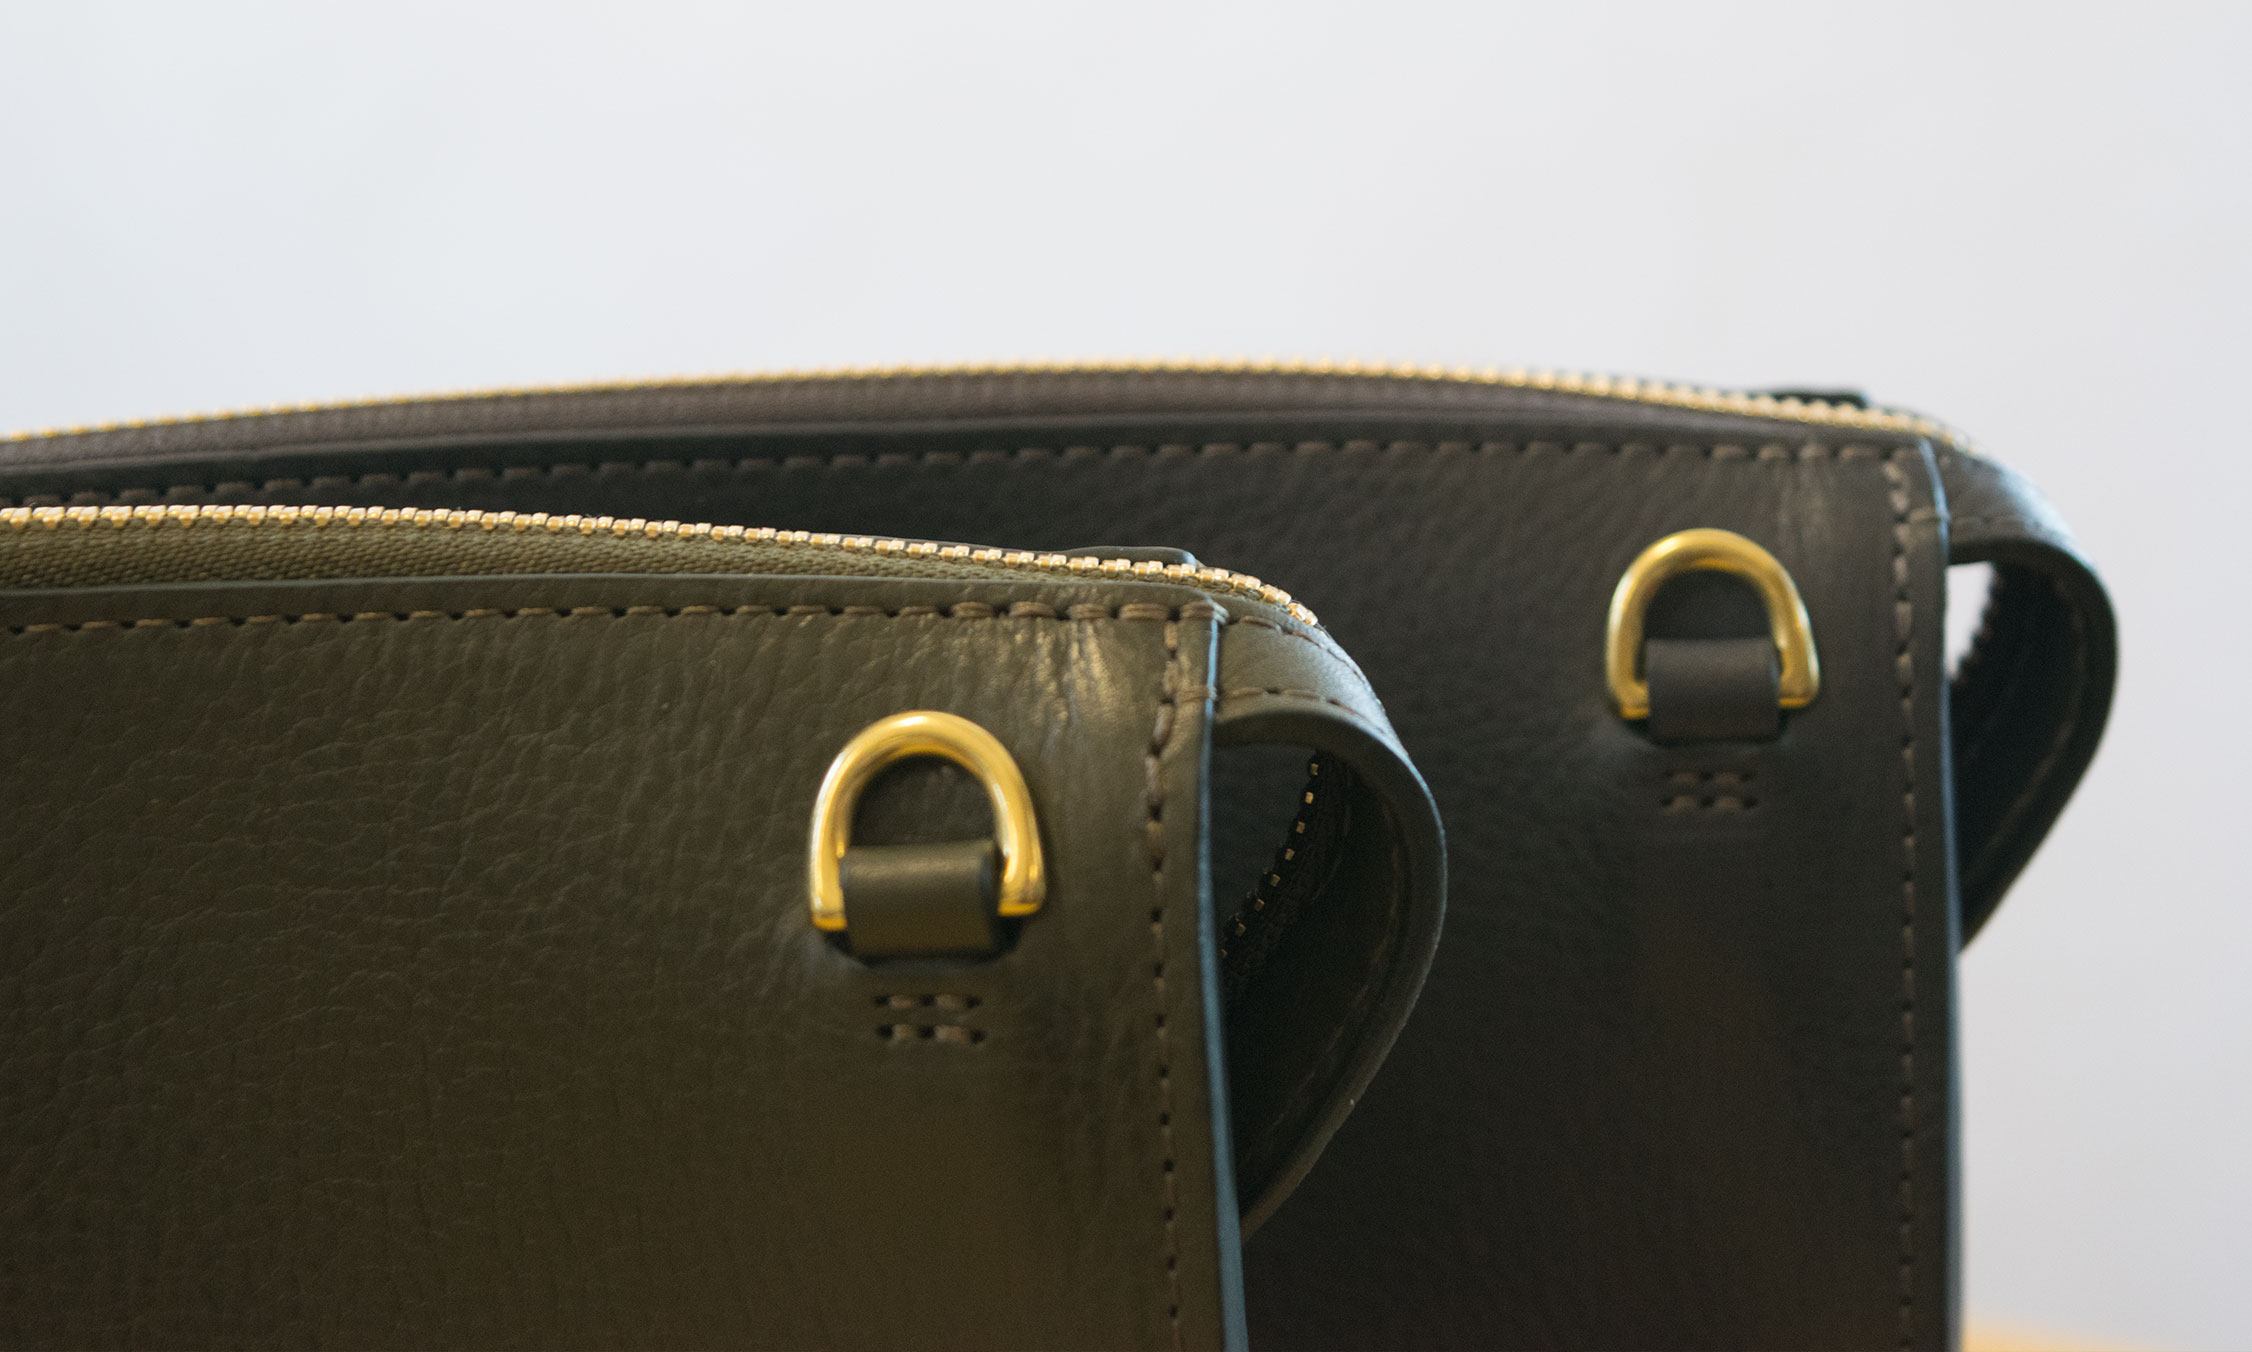 Lotuff Leather Tripp handbag in olive green and elephant